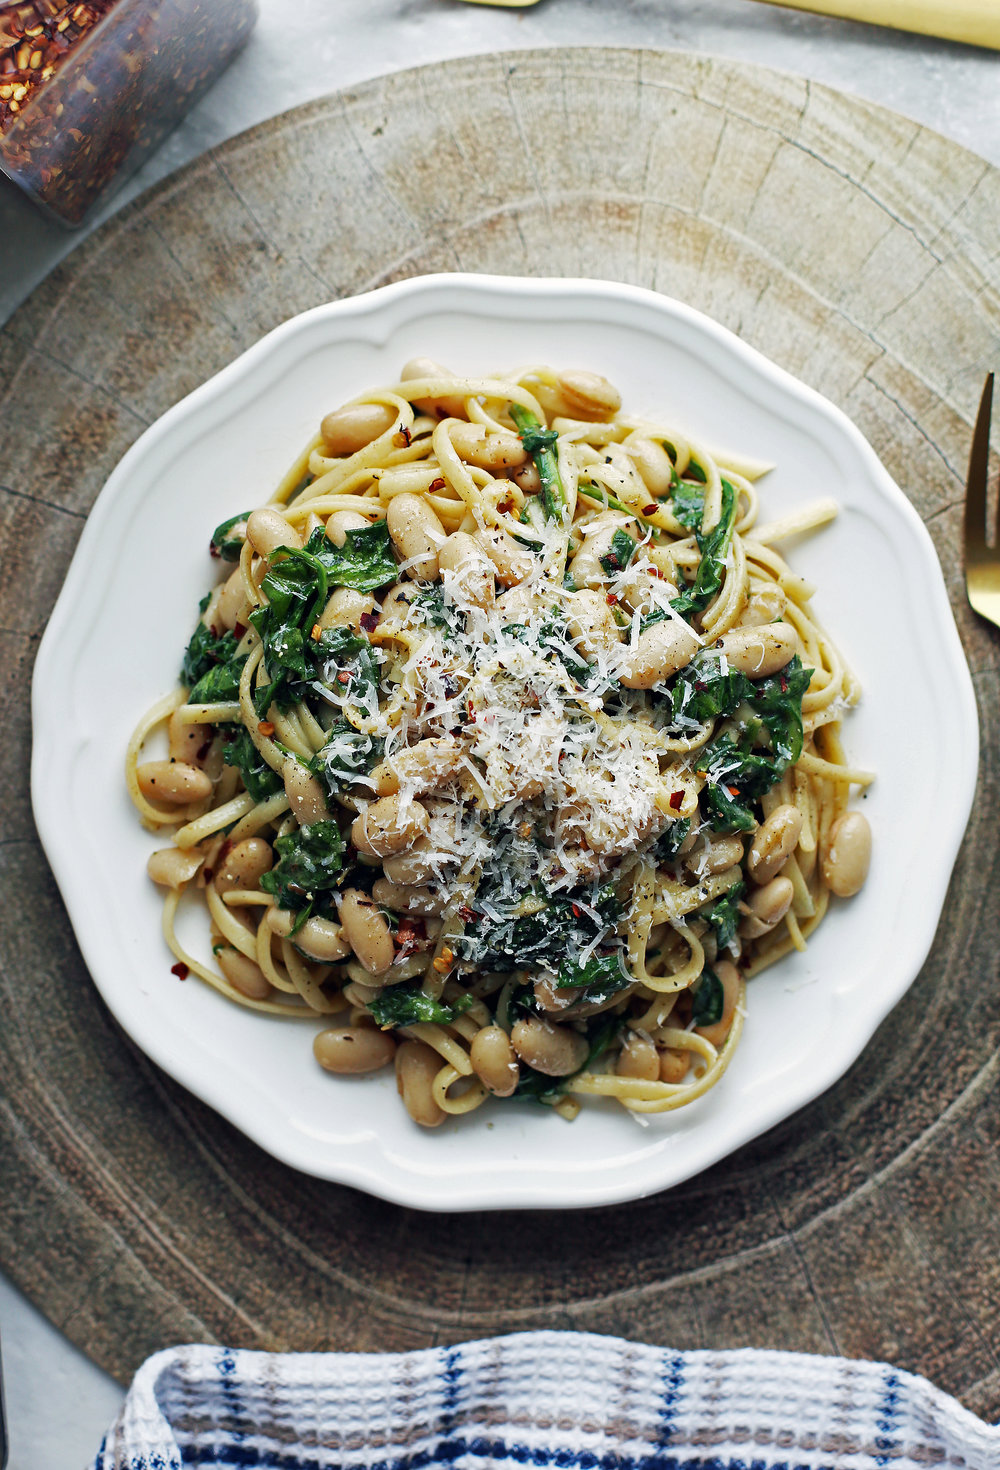 Overhead view of Brown Butter Linguine with White Beans and Spinach topped with parmesan cheese on a white plate.